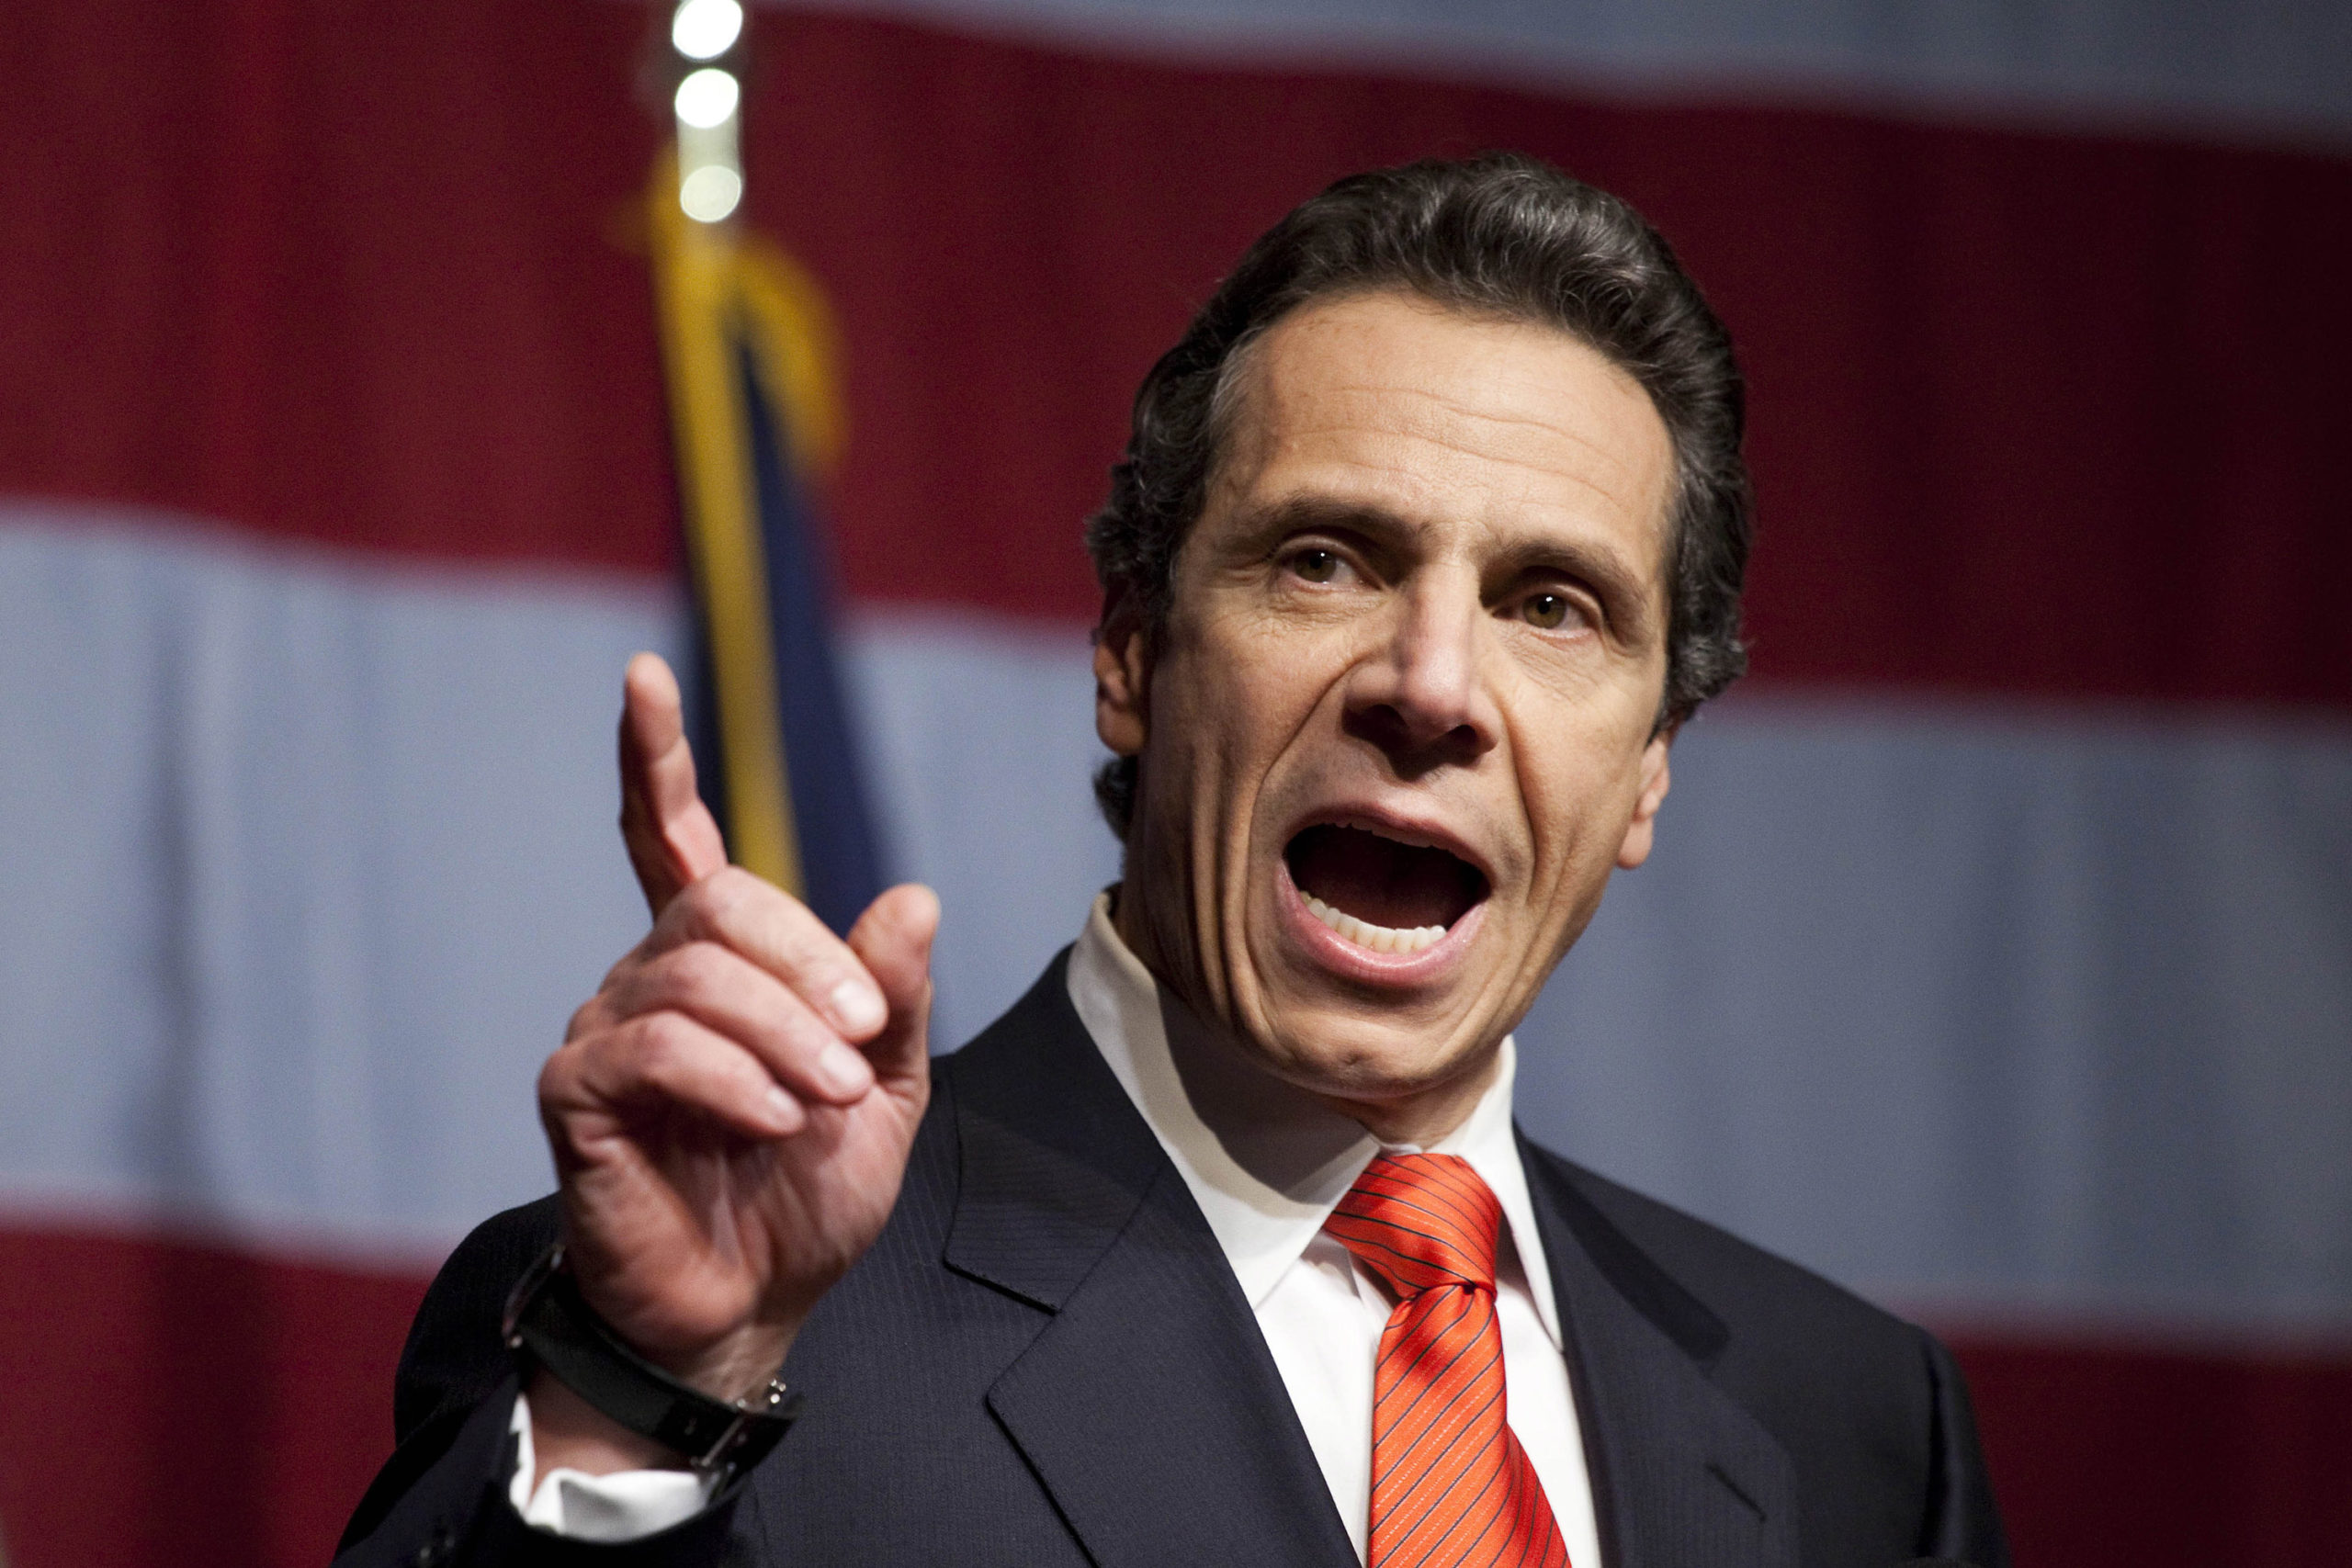 New York Governor-elect Andrew Cuomo speaks to supporters at the Sheraton New York on election night, November 2, 2010 in New York City. Cuomo resoundingly defeated his Tea Party-backed opponent, Republican candidate Carl Paladino. (Michael Nagle/Getty Images)